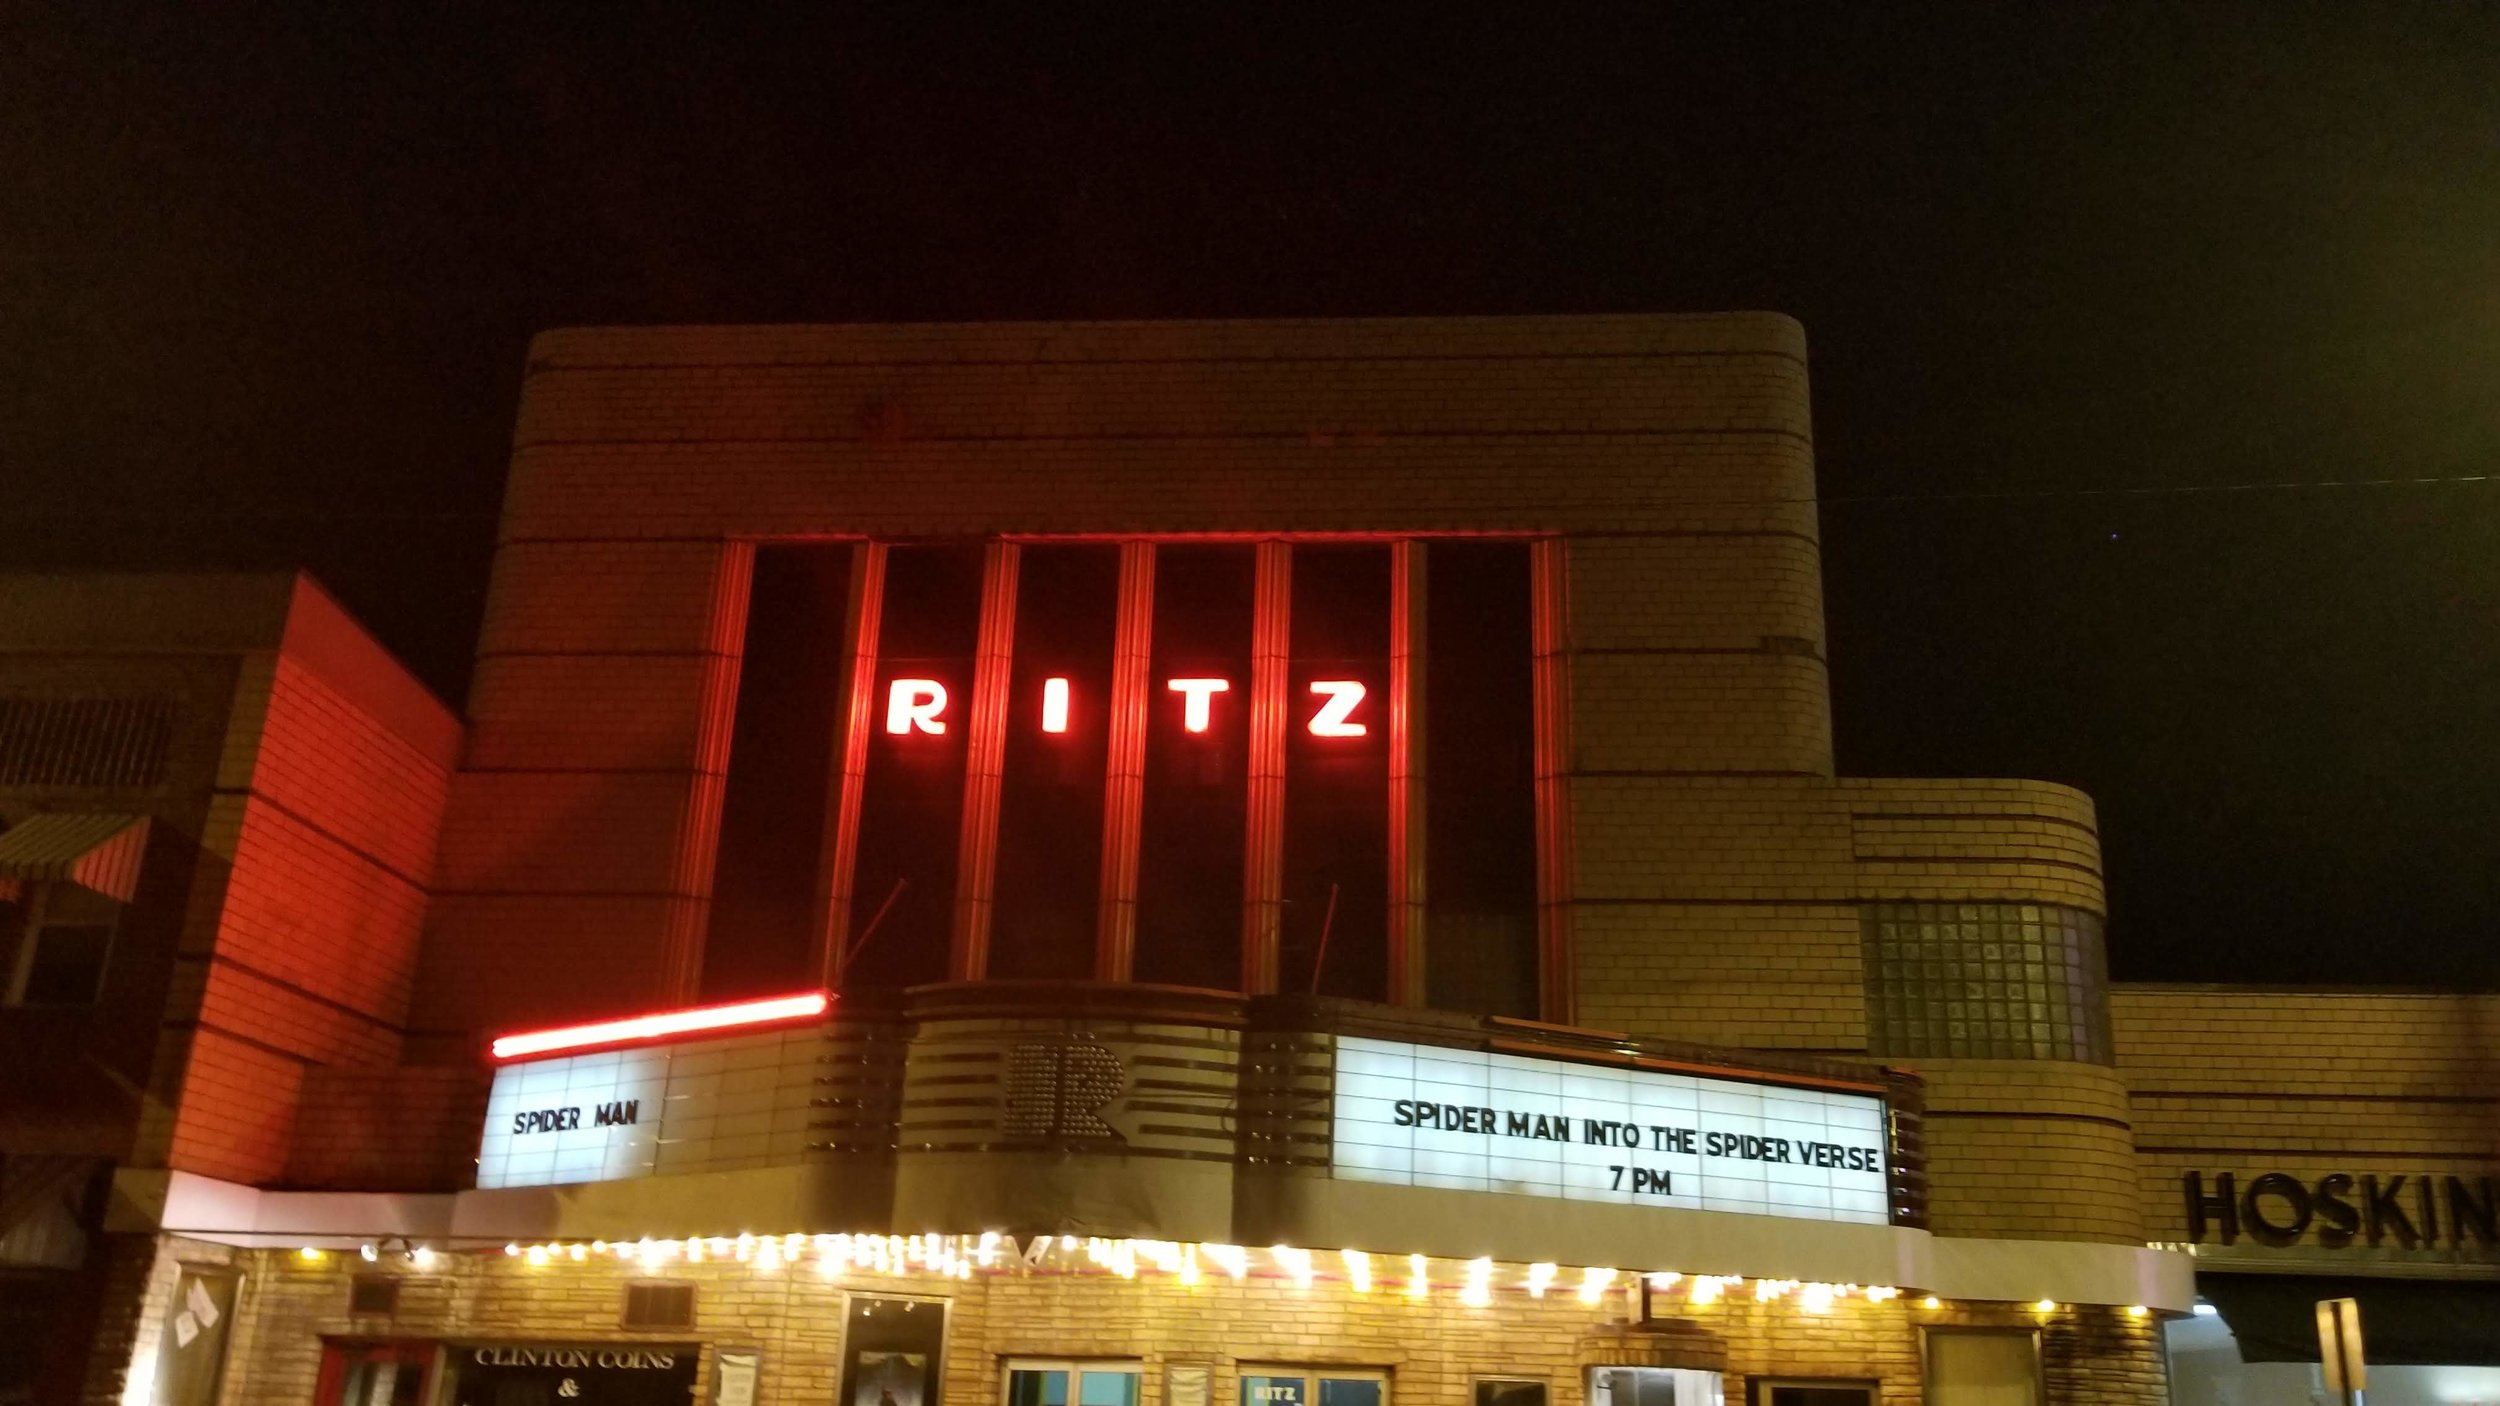 The Ritz is an Art Deco theater located on Main Street in Clinton, Tennessee.